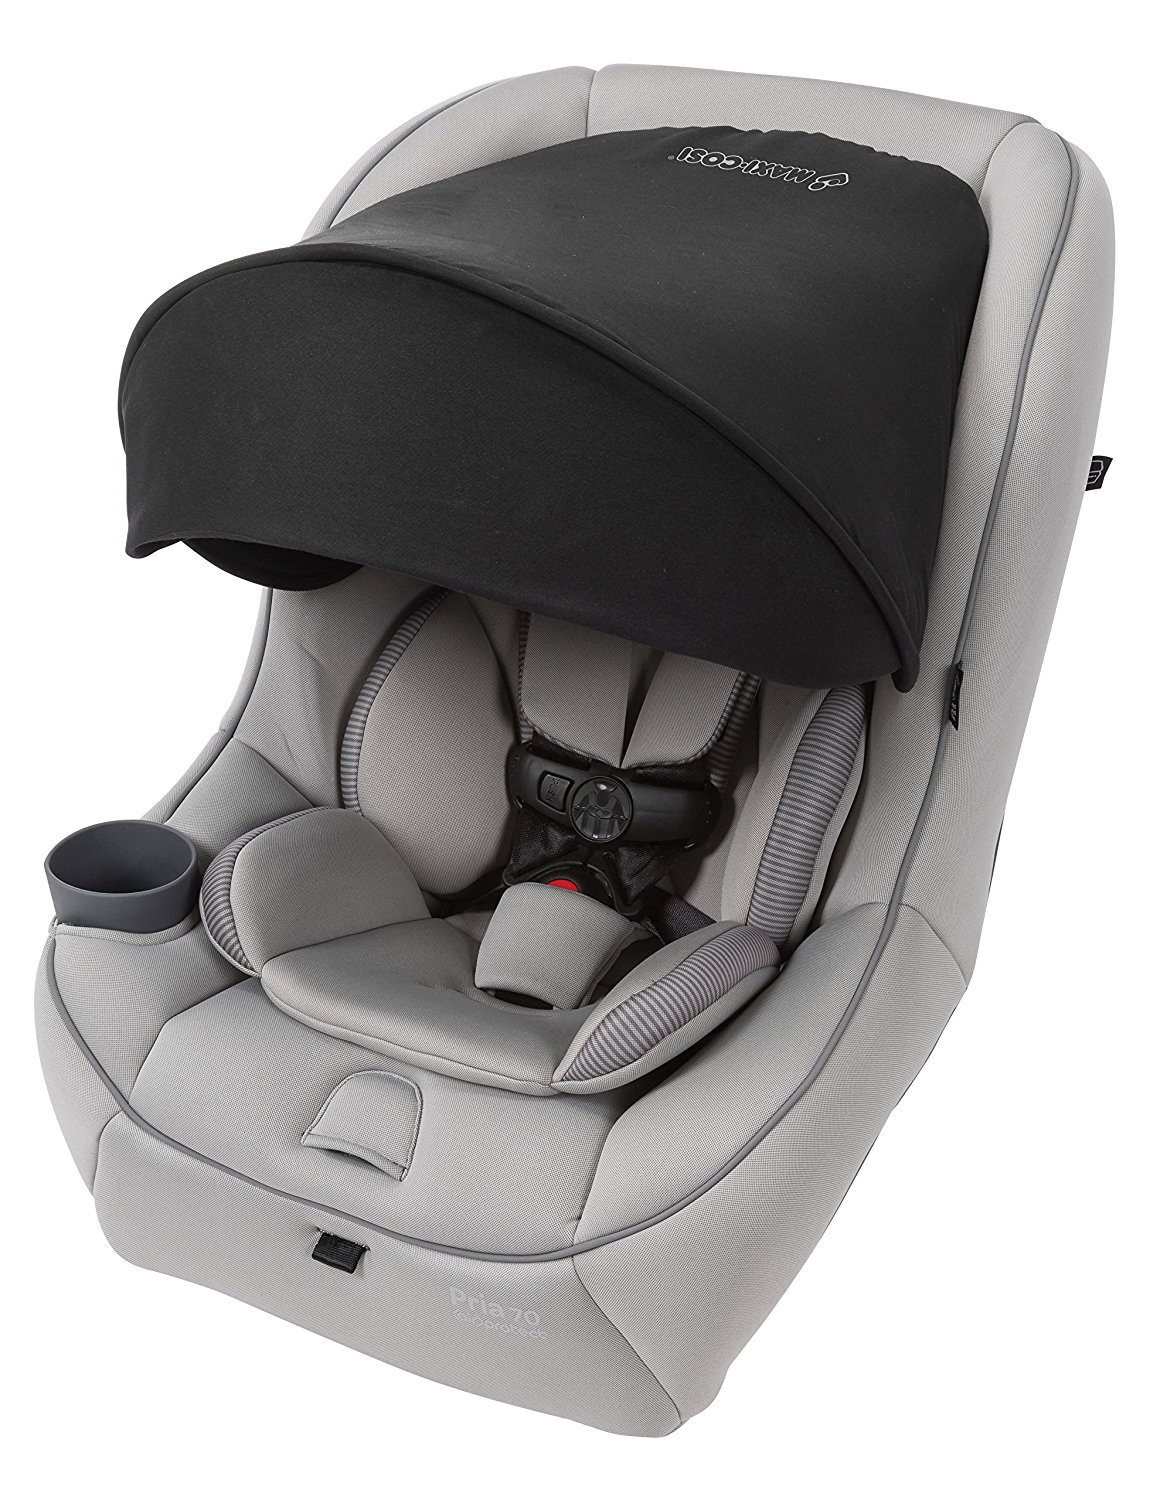 Baby Capsule Convertible Car Seat Brand New Cosi Convertible Car Seat Canopy High Quality